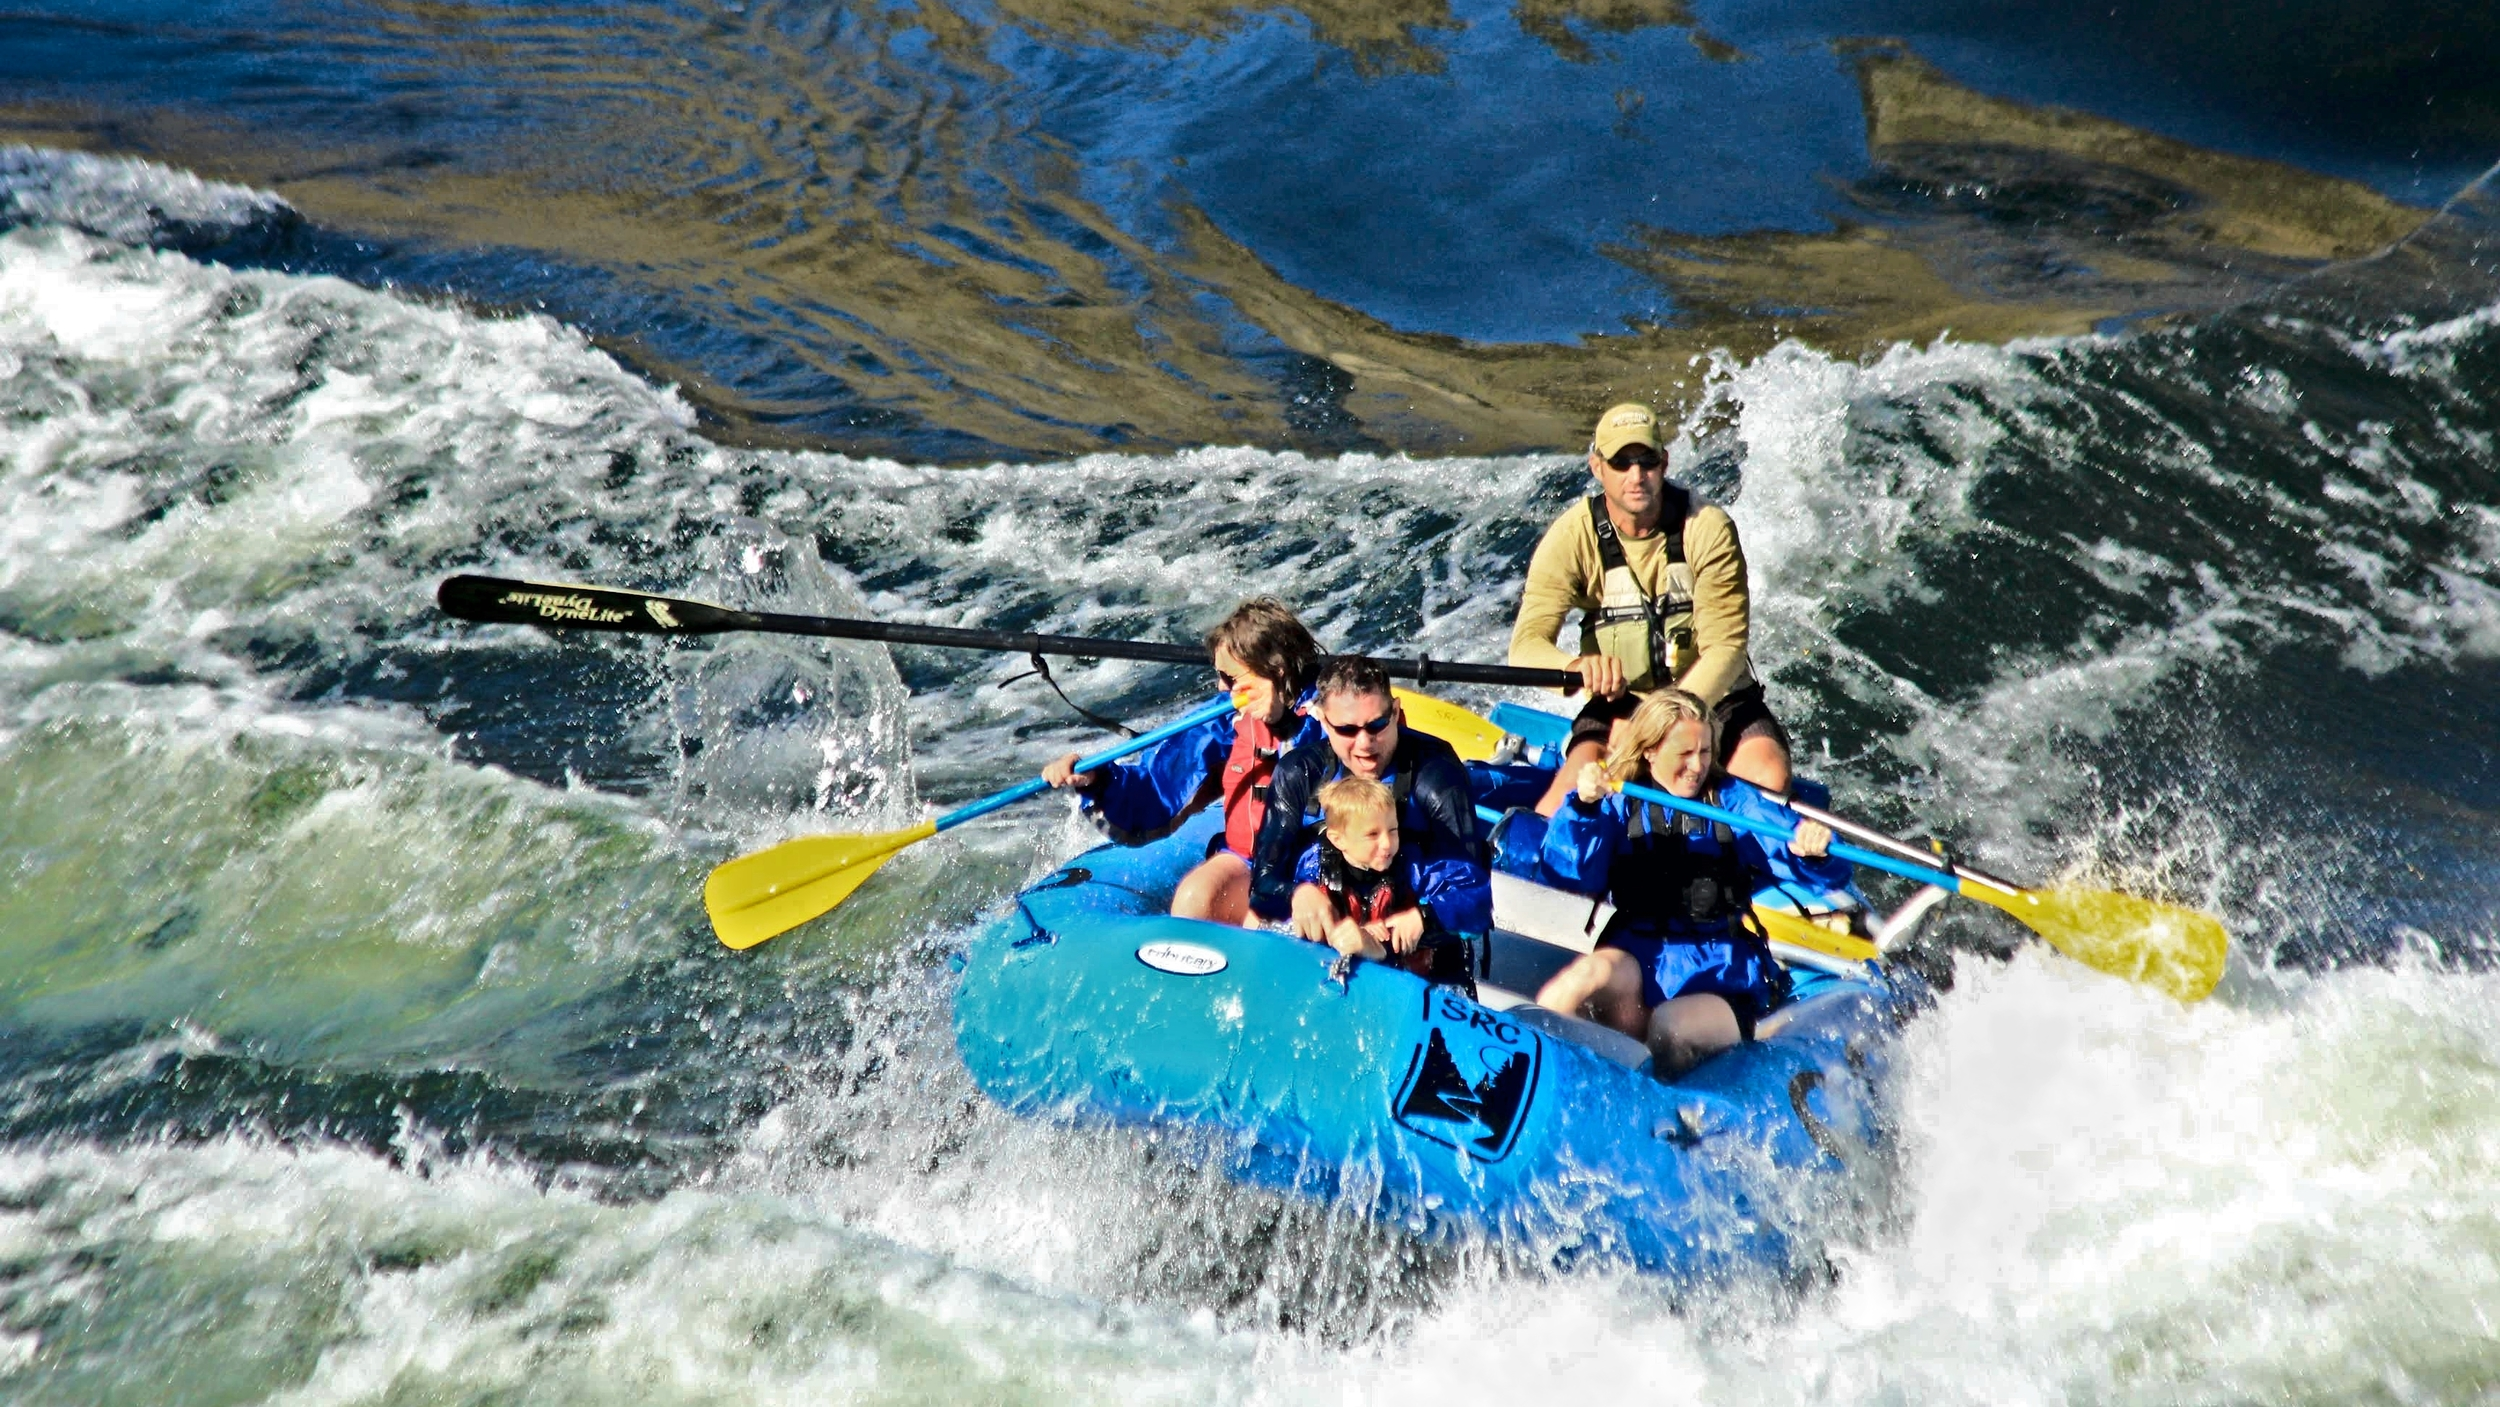 Family getting wet rafting on the Salmon River in Idaho near Riggins and McCall